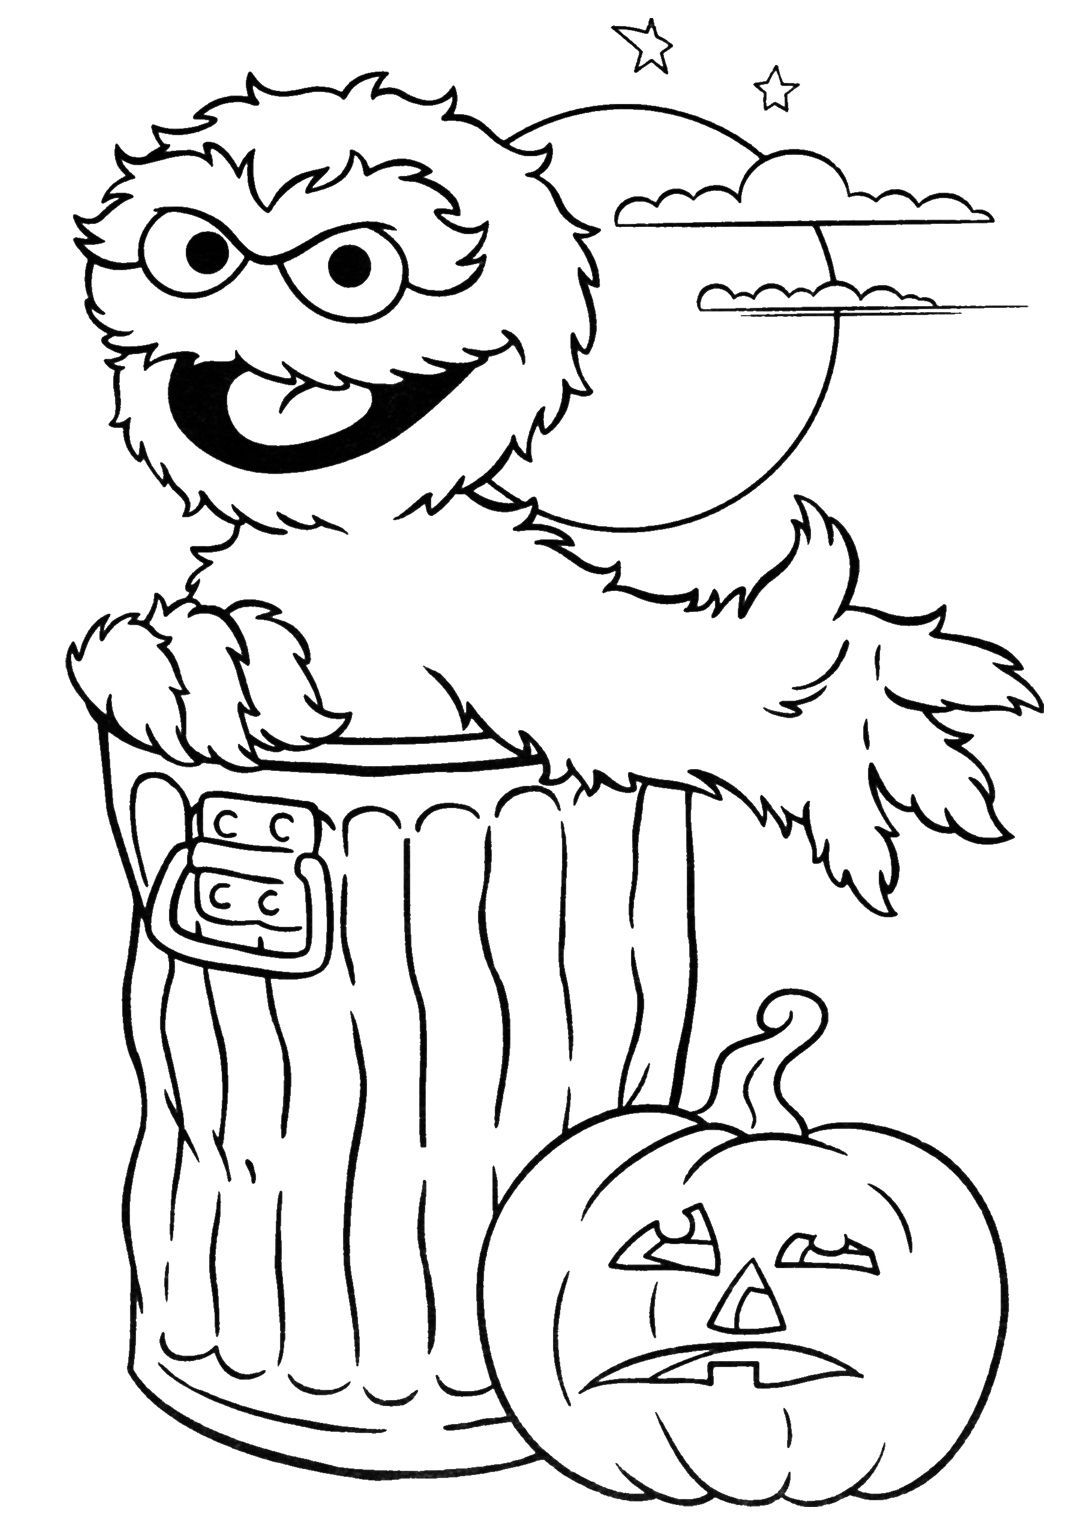 Free halloween coloring pages to print out - Free Printable Halloween Coloring Pages For Kids C0lor